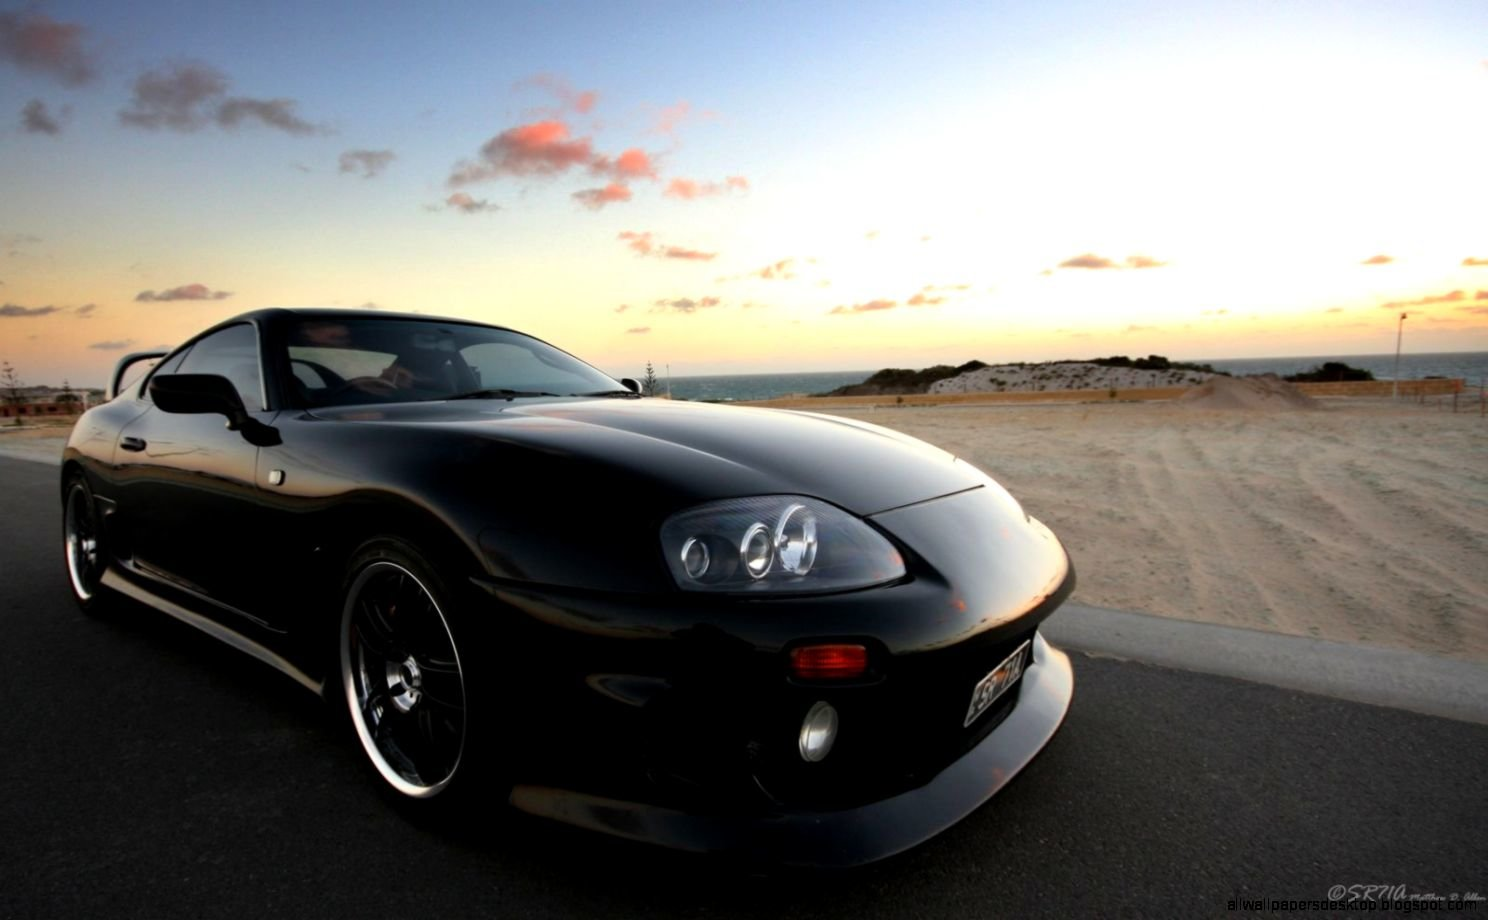 New Toyota Supra Black Car Hd Wallpaper All Wallpapers Desktop On This Month